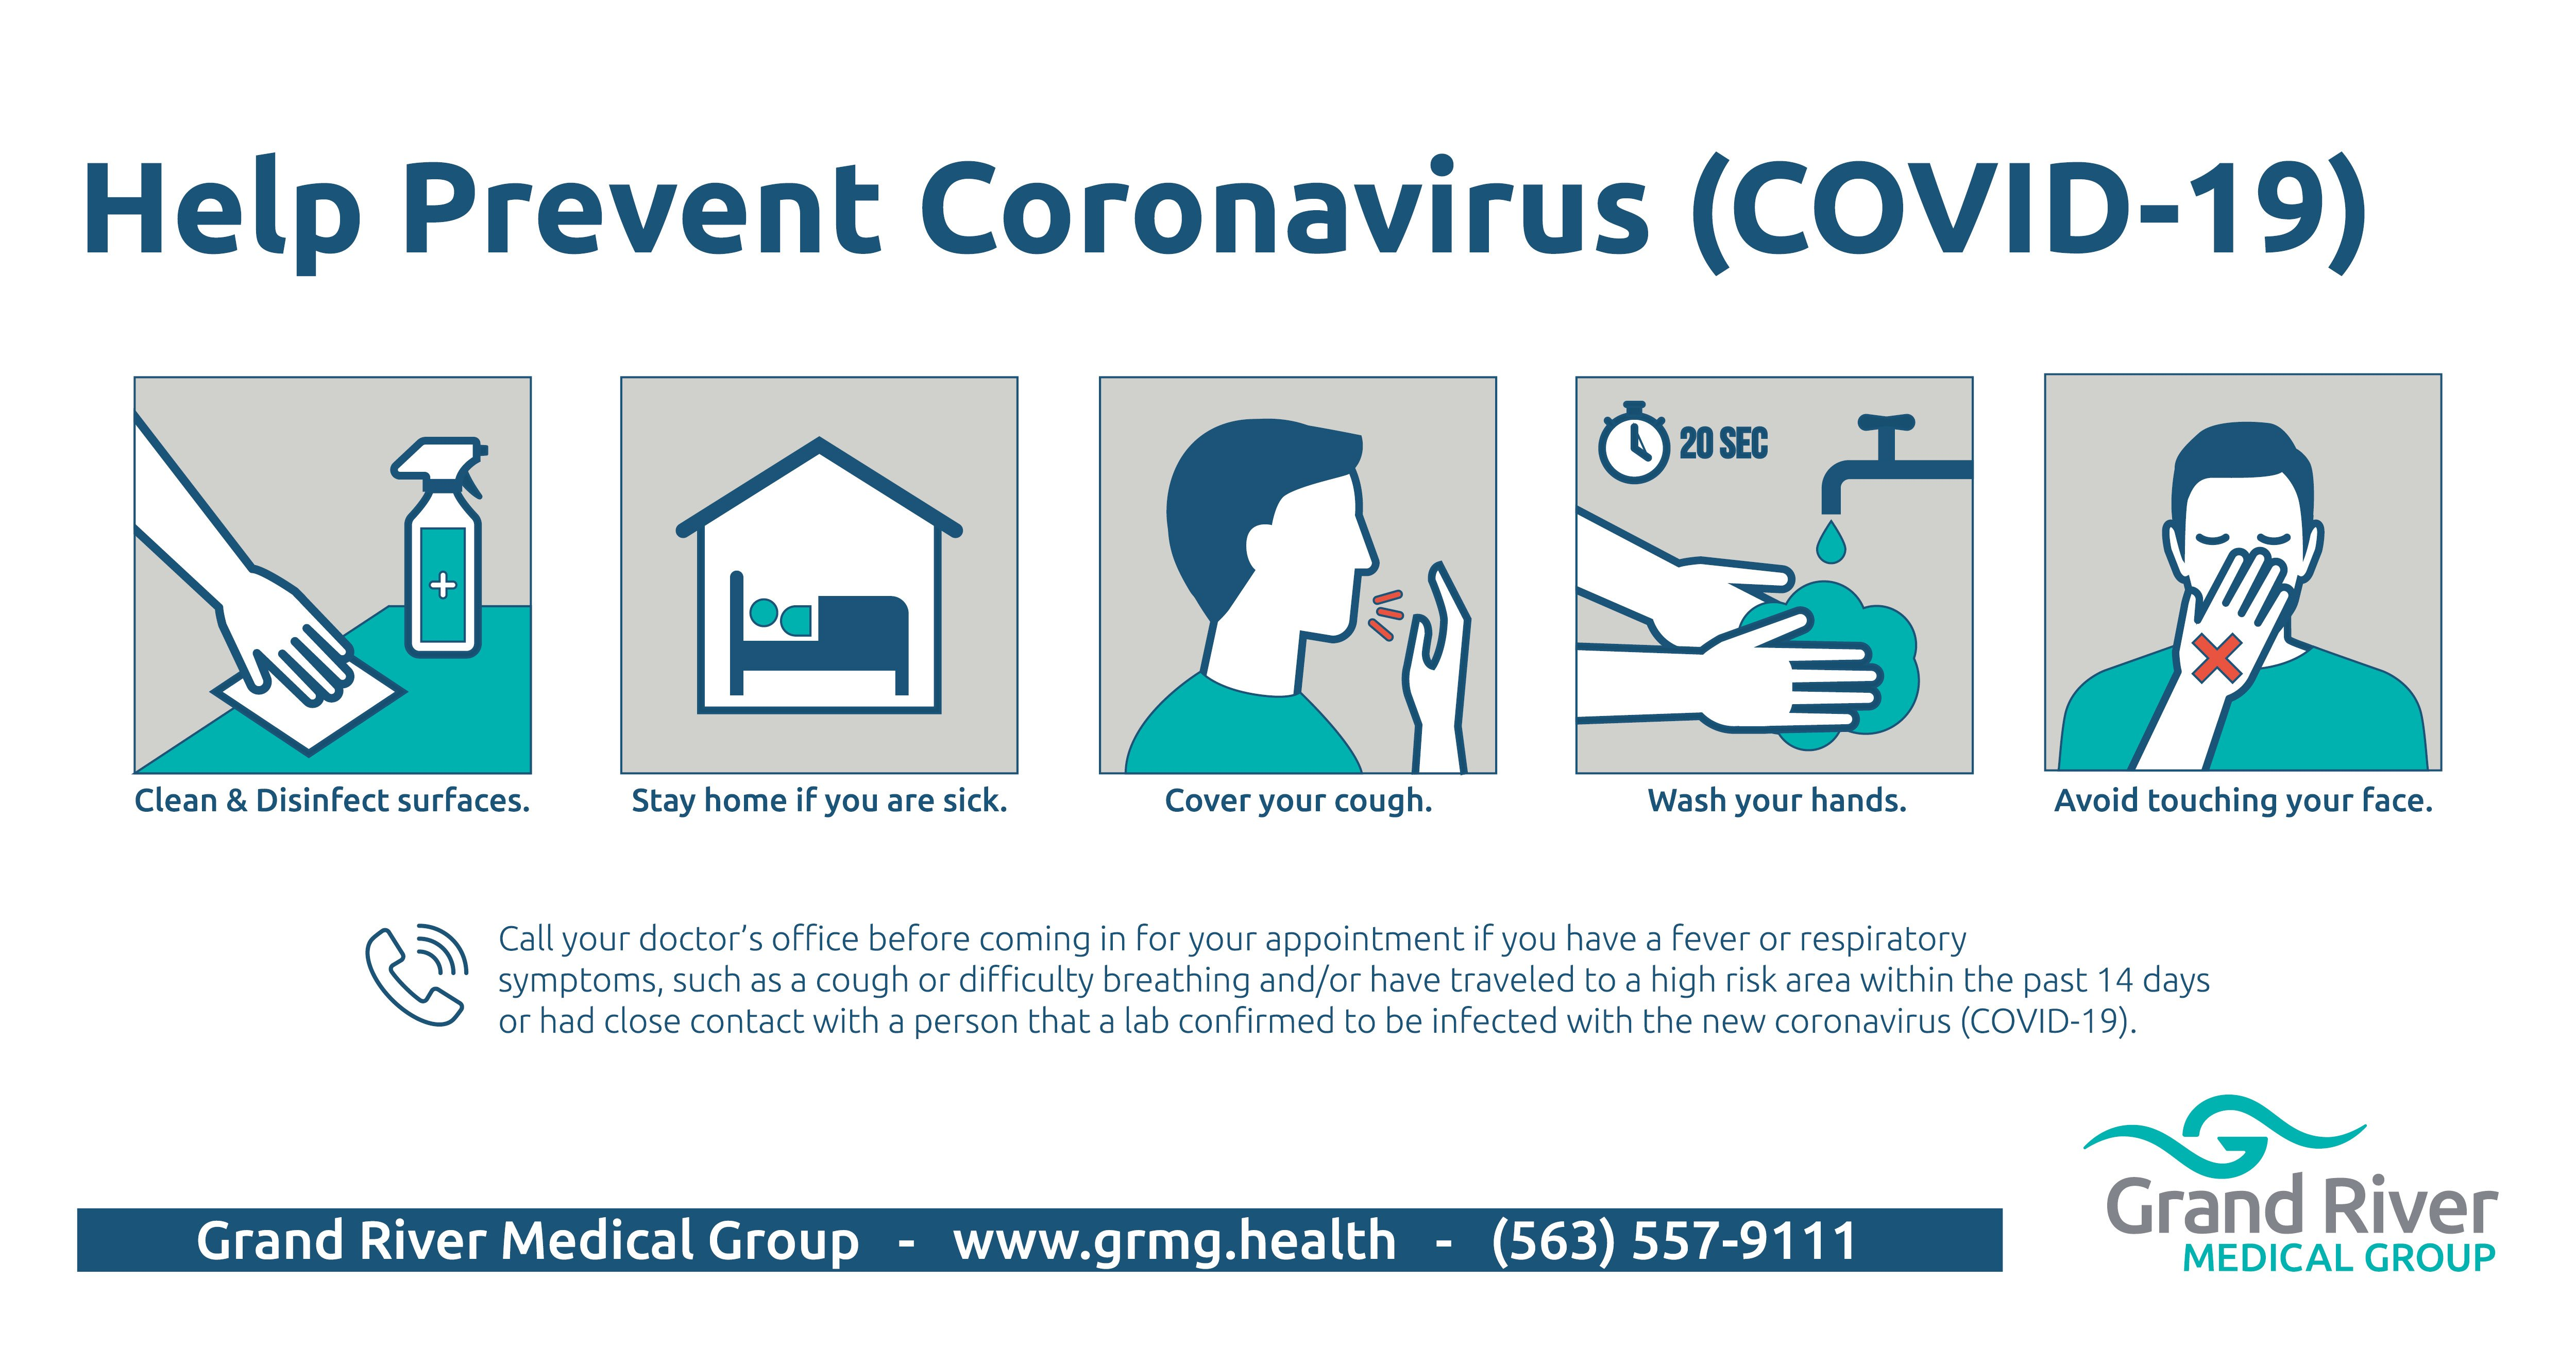 Help prevent spread of coronavirus tips.